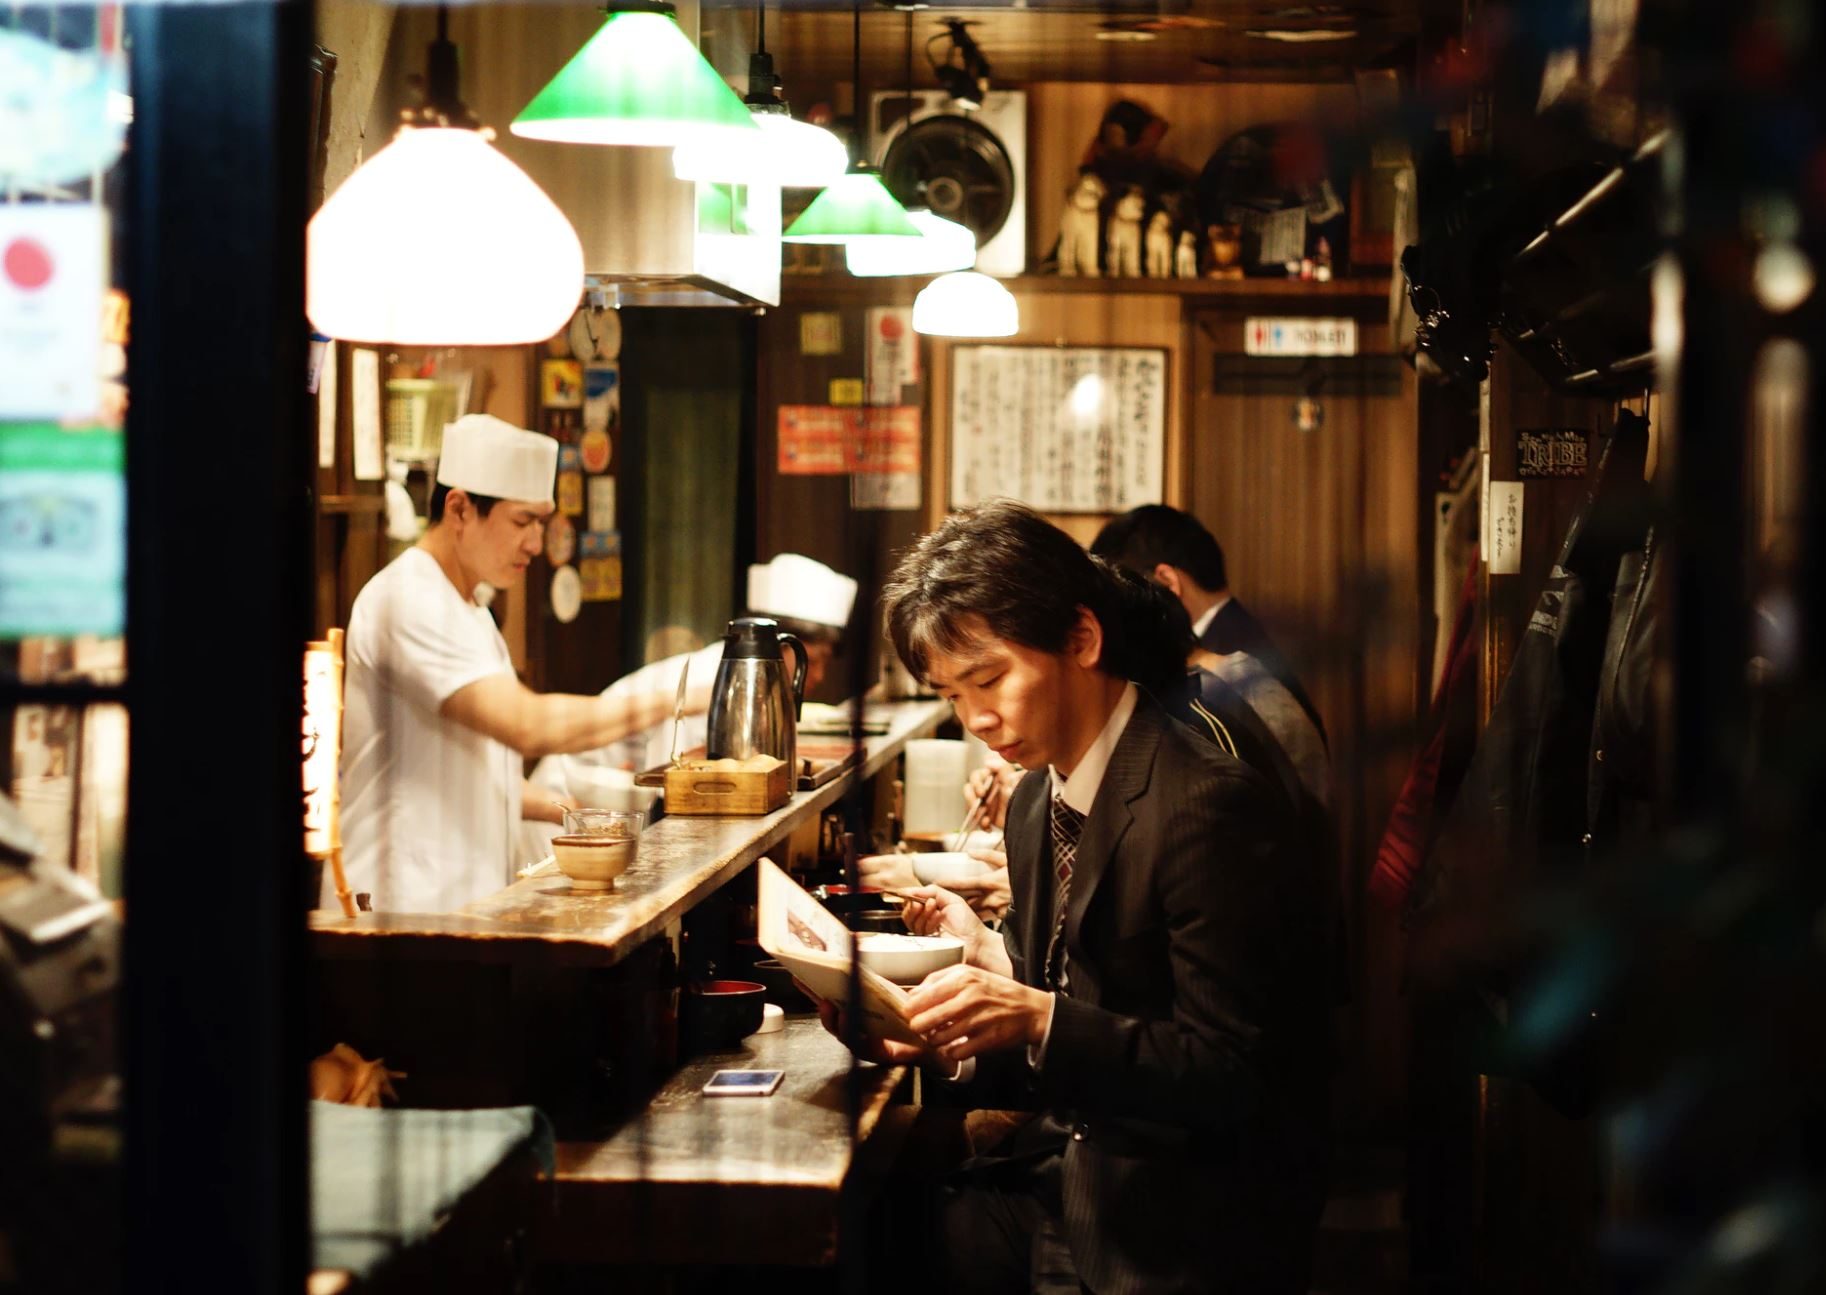 An area guide for English teachers in Tokyo